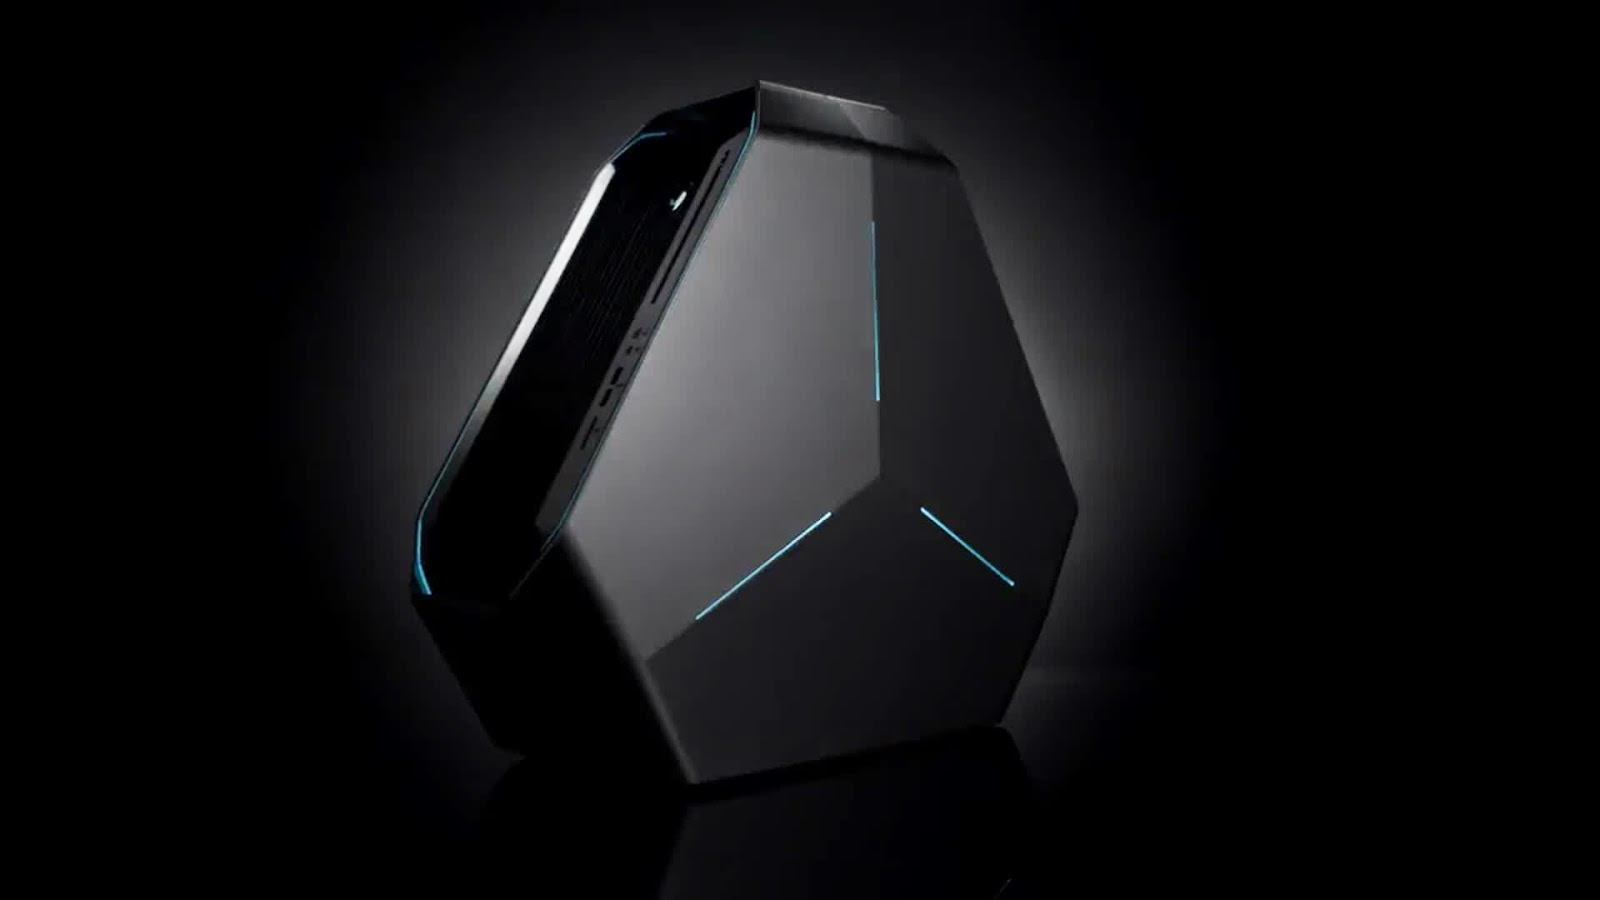 Awesome Games: Alienware Area